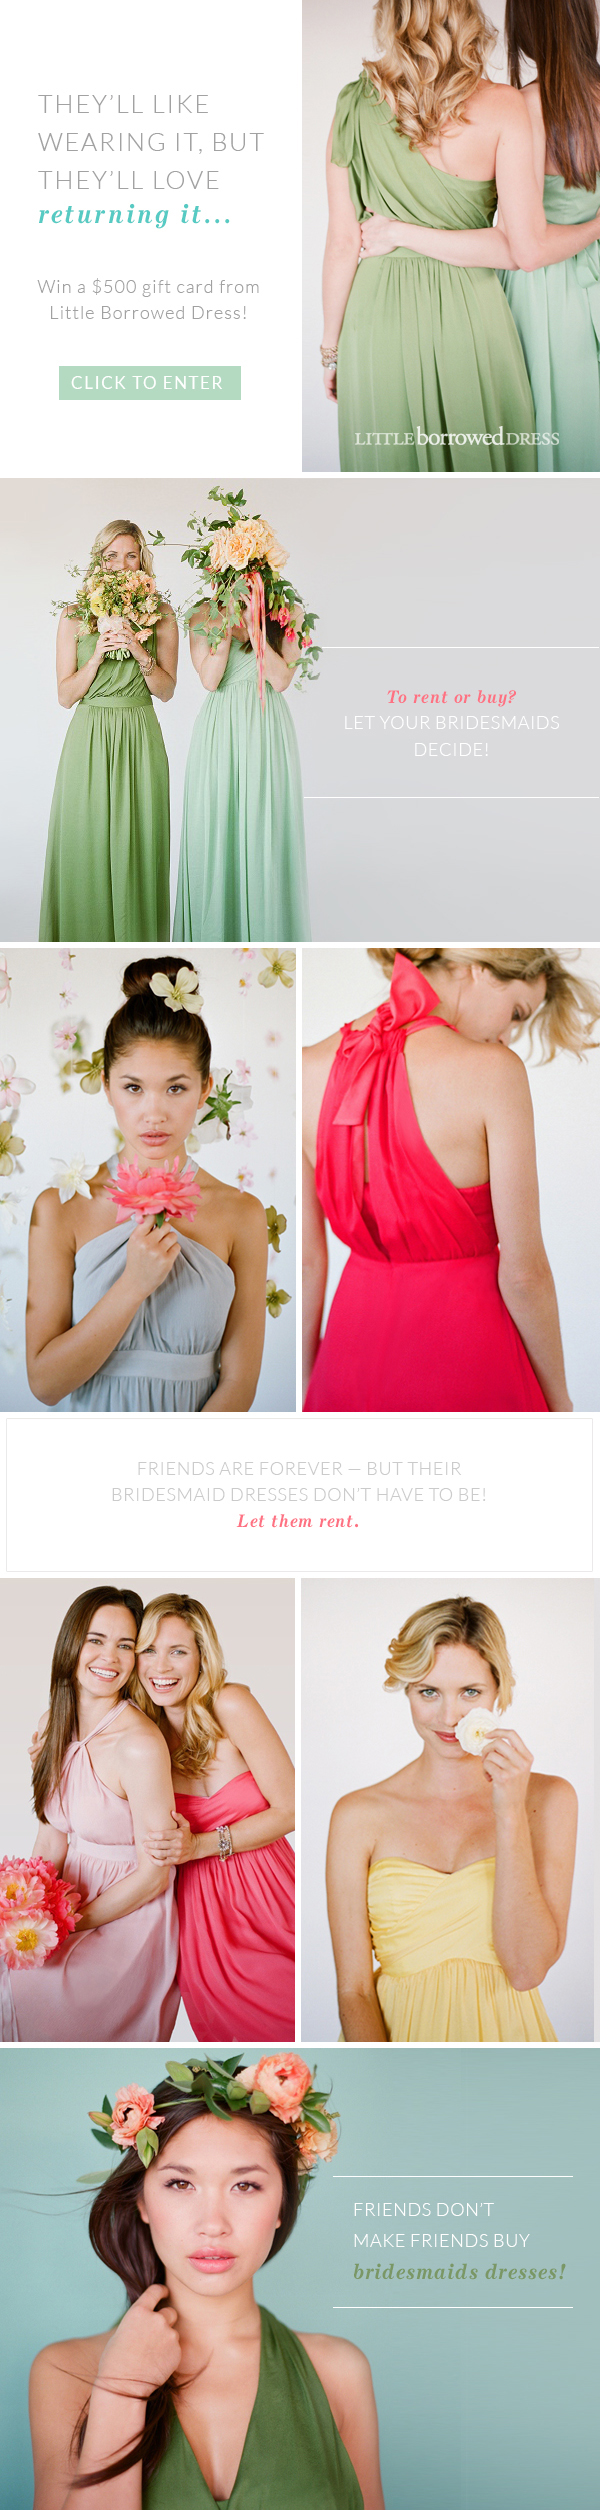 Rent your wedding dress  bridesmaid dress rentals so youure not stuck with a dress youull